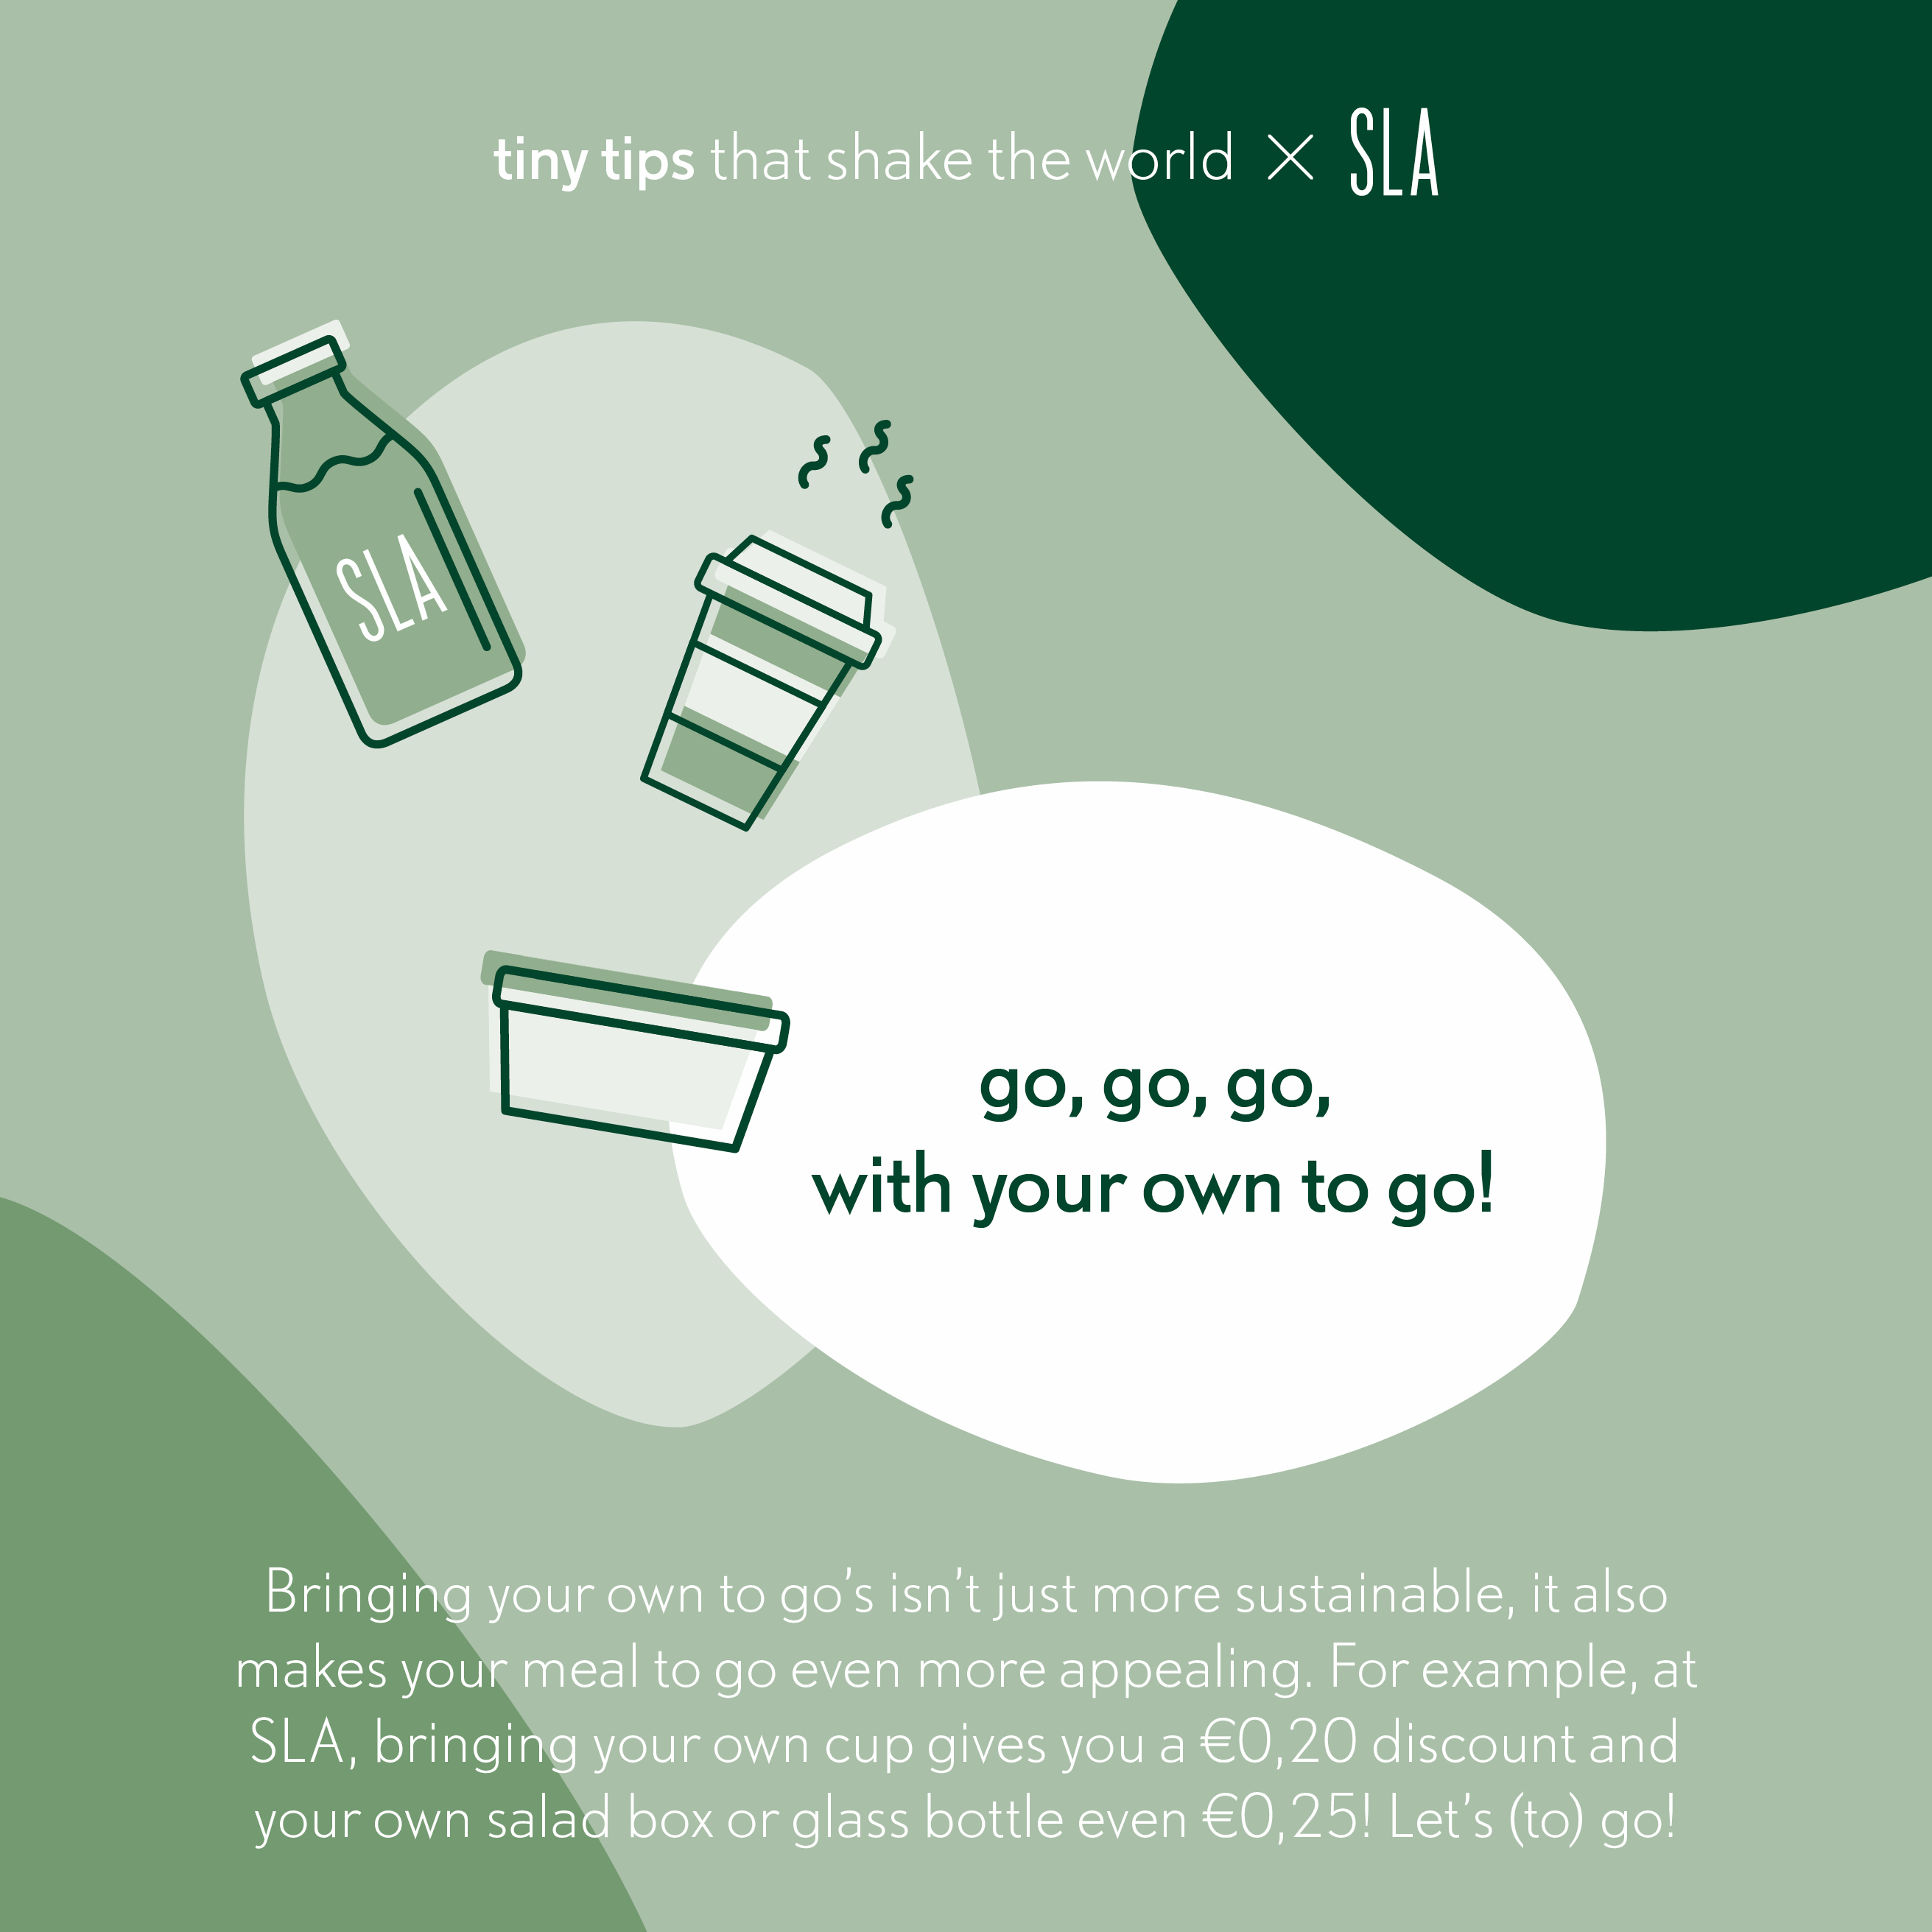 Tiny tips that shake the world SLA Go go go with your own to go